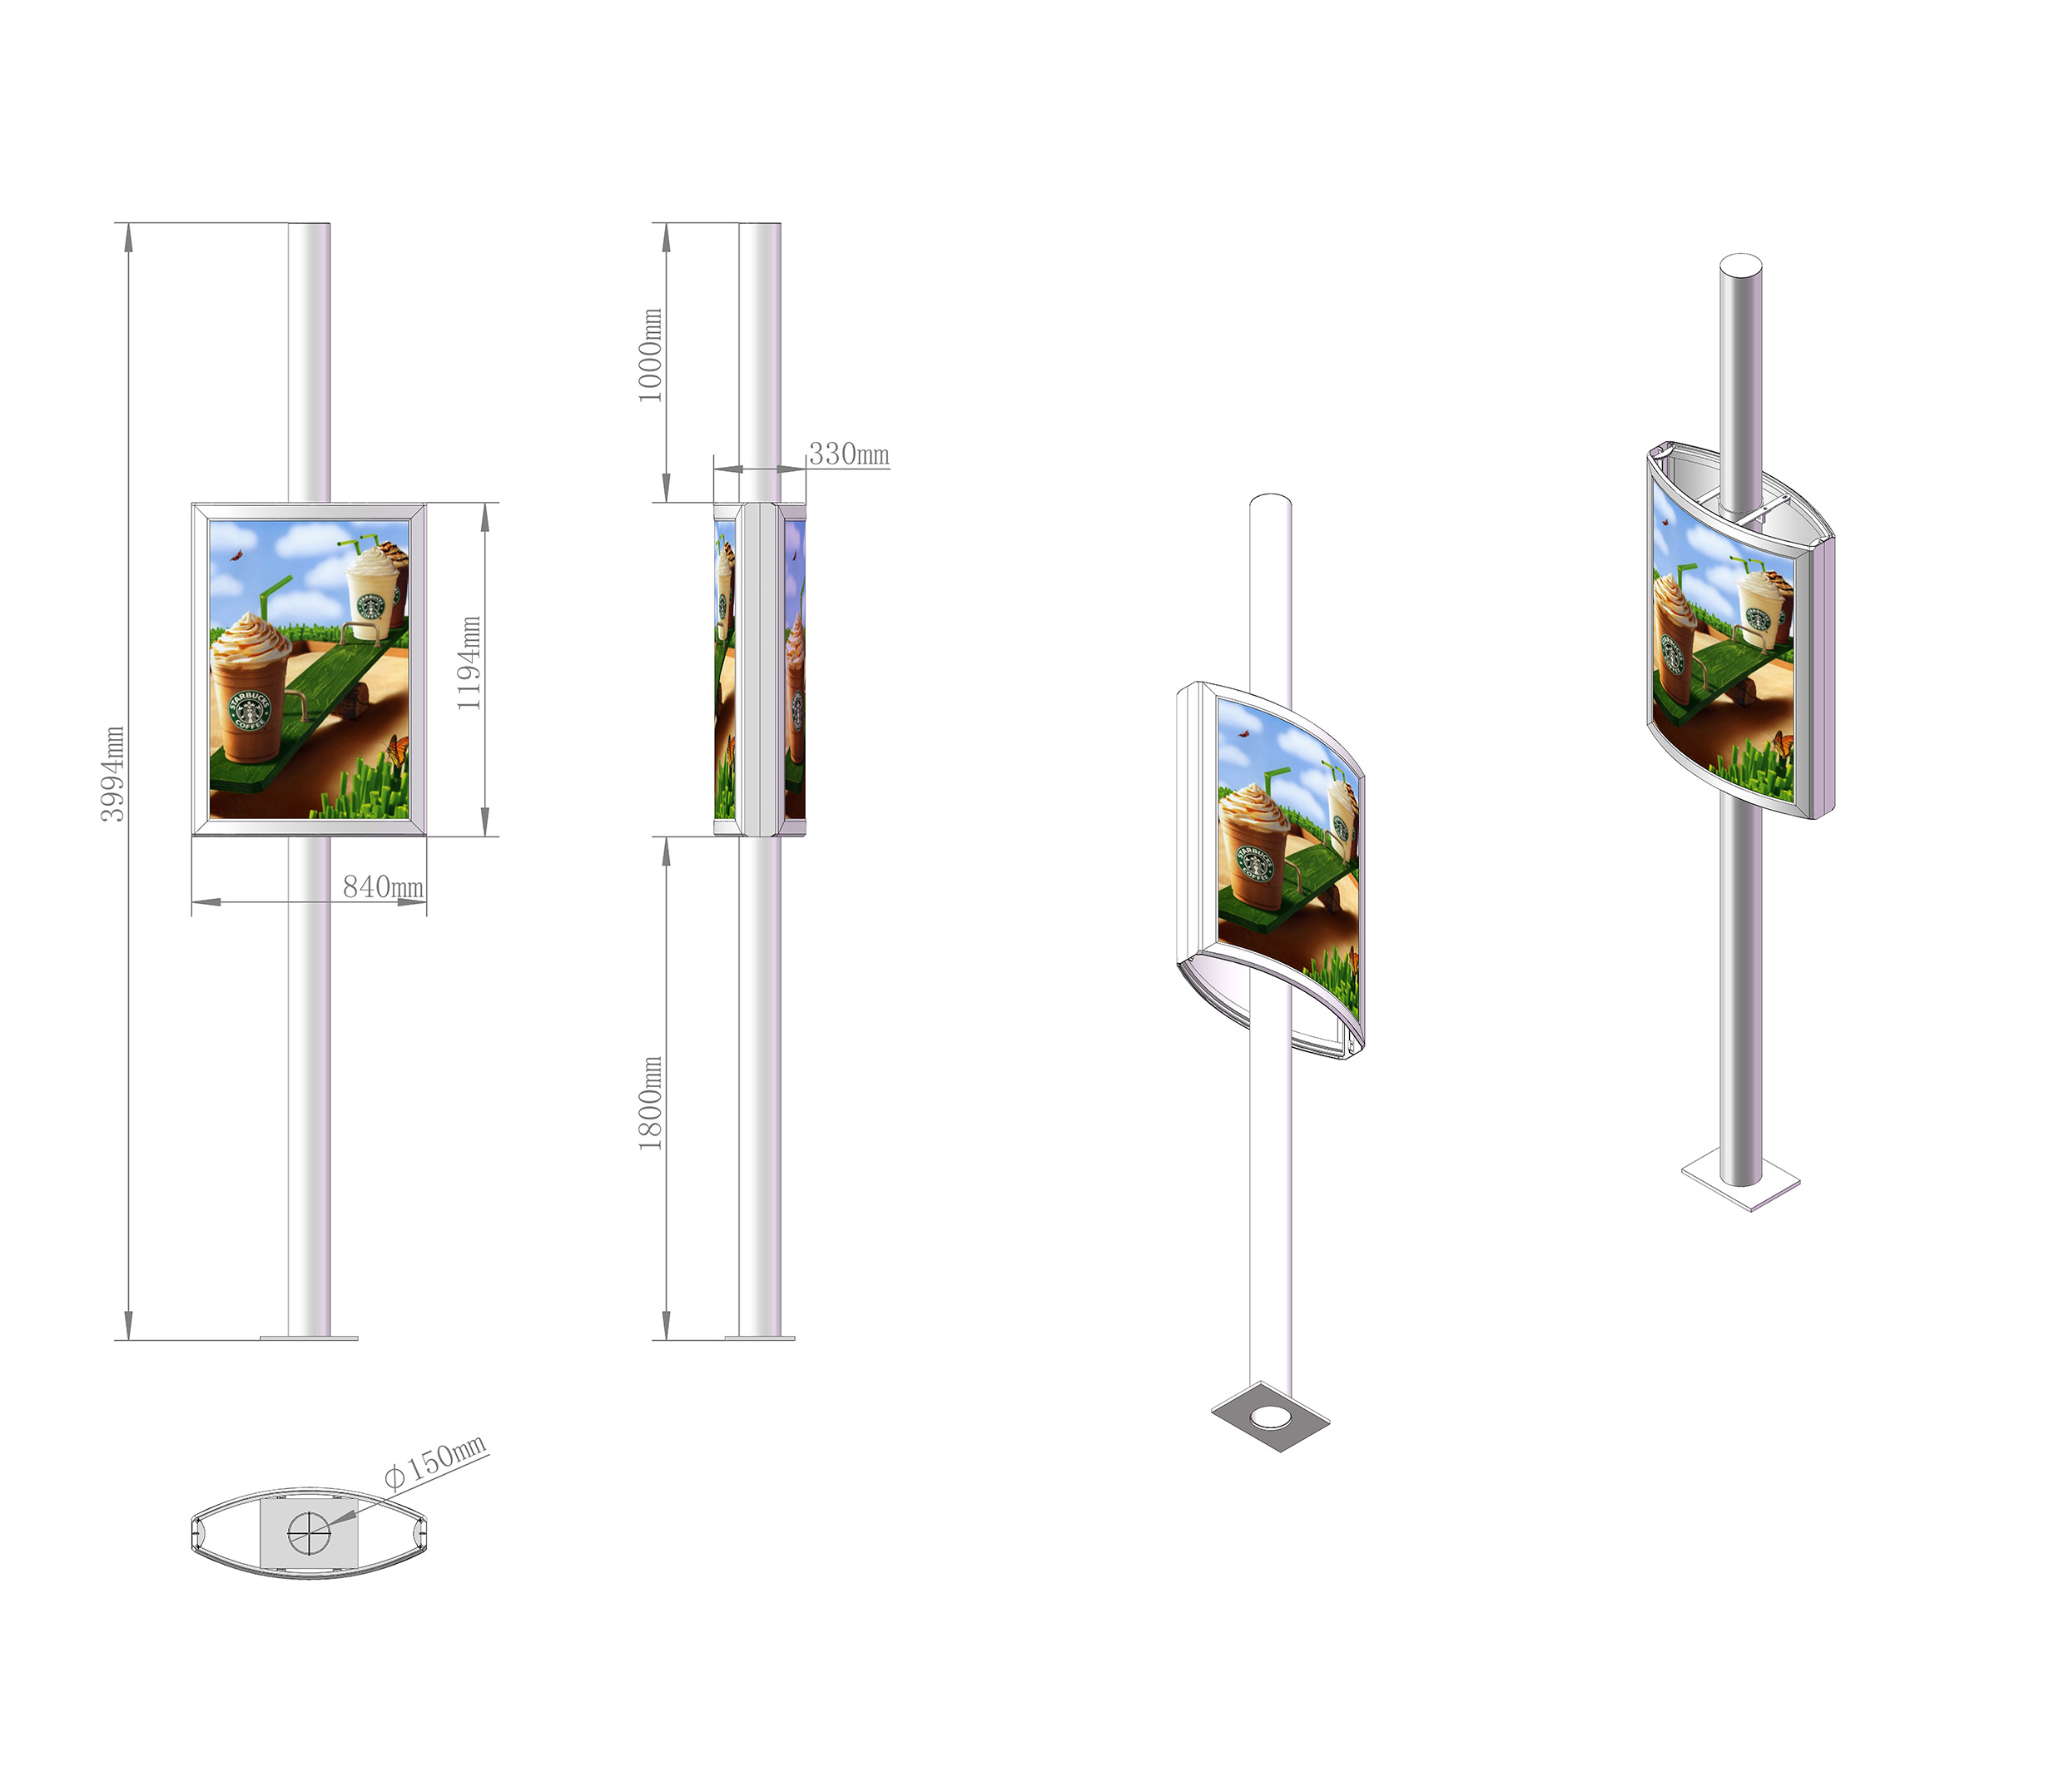 YEROO-Find Pole Led Display Outdoor Light Pole Display From Yeroo Bus Shelter-2